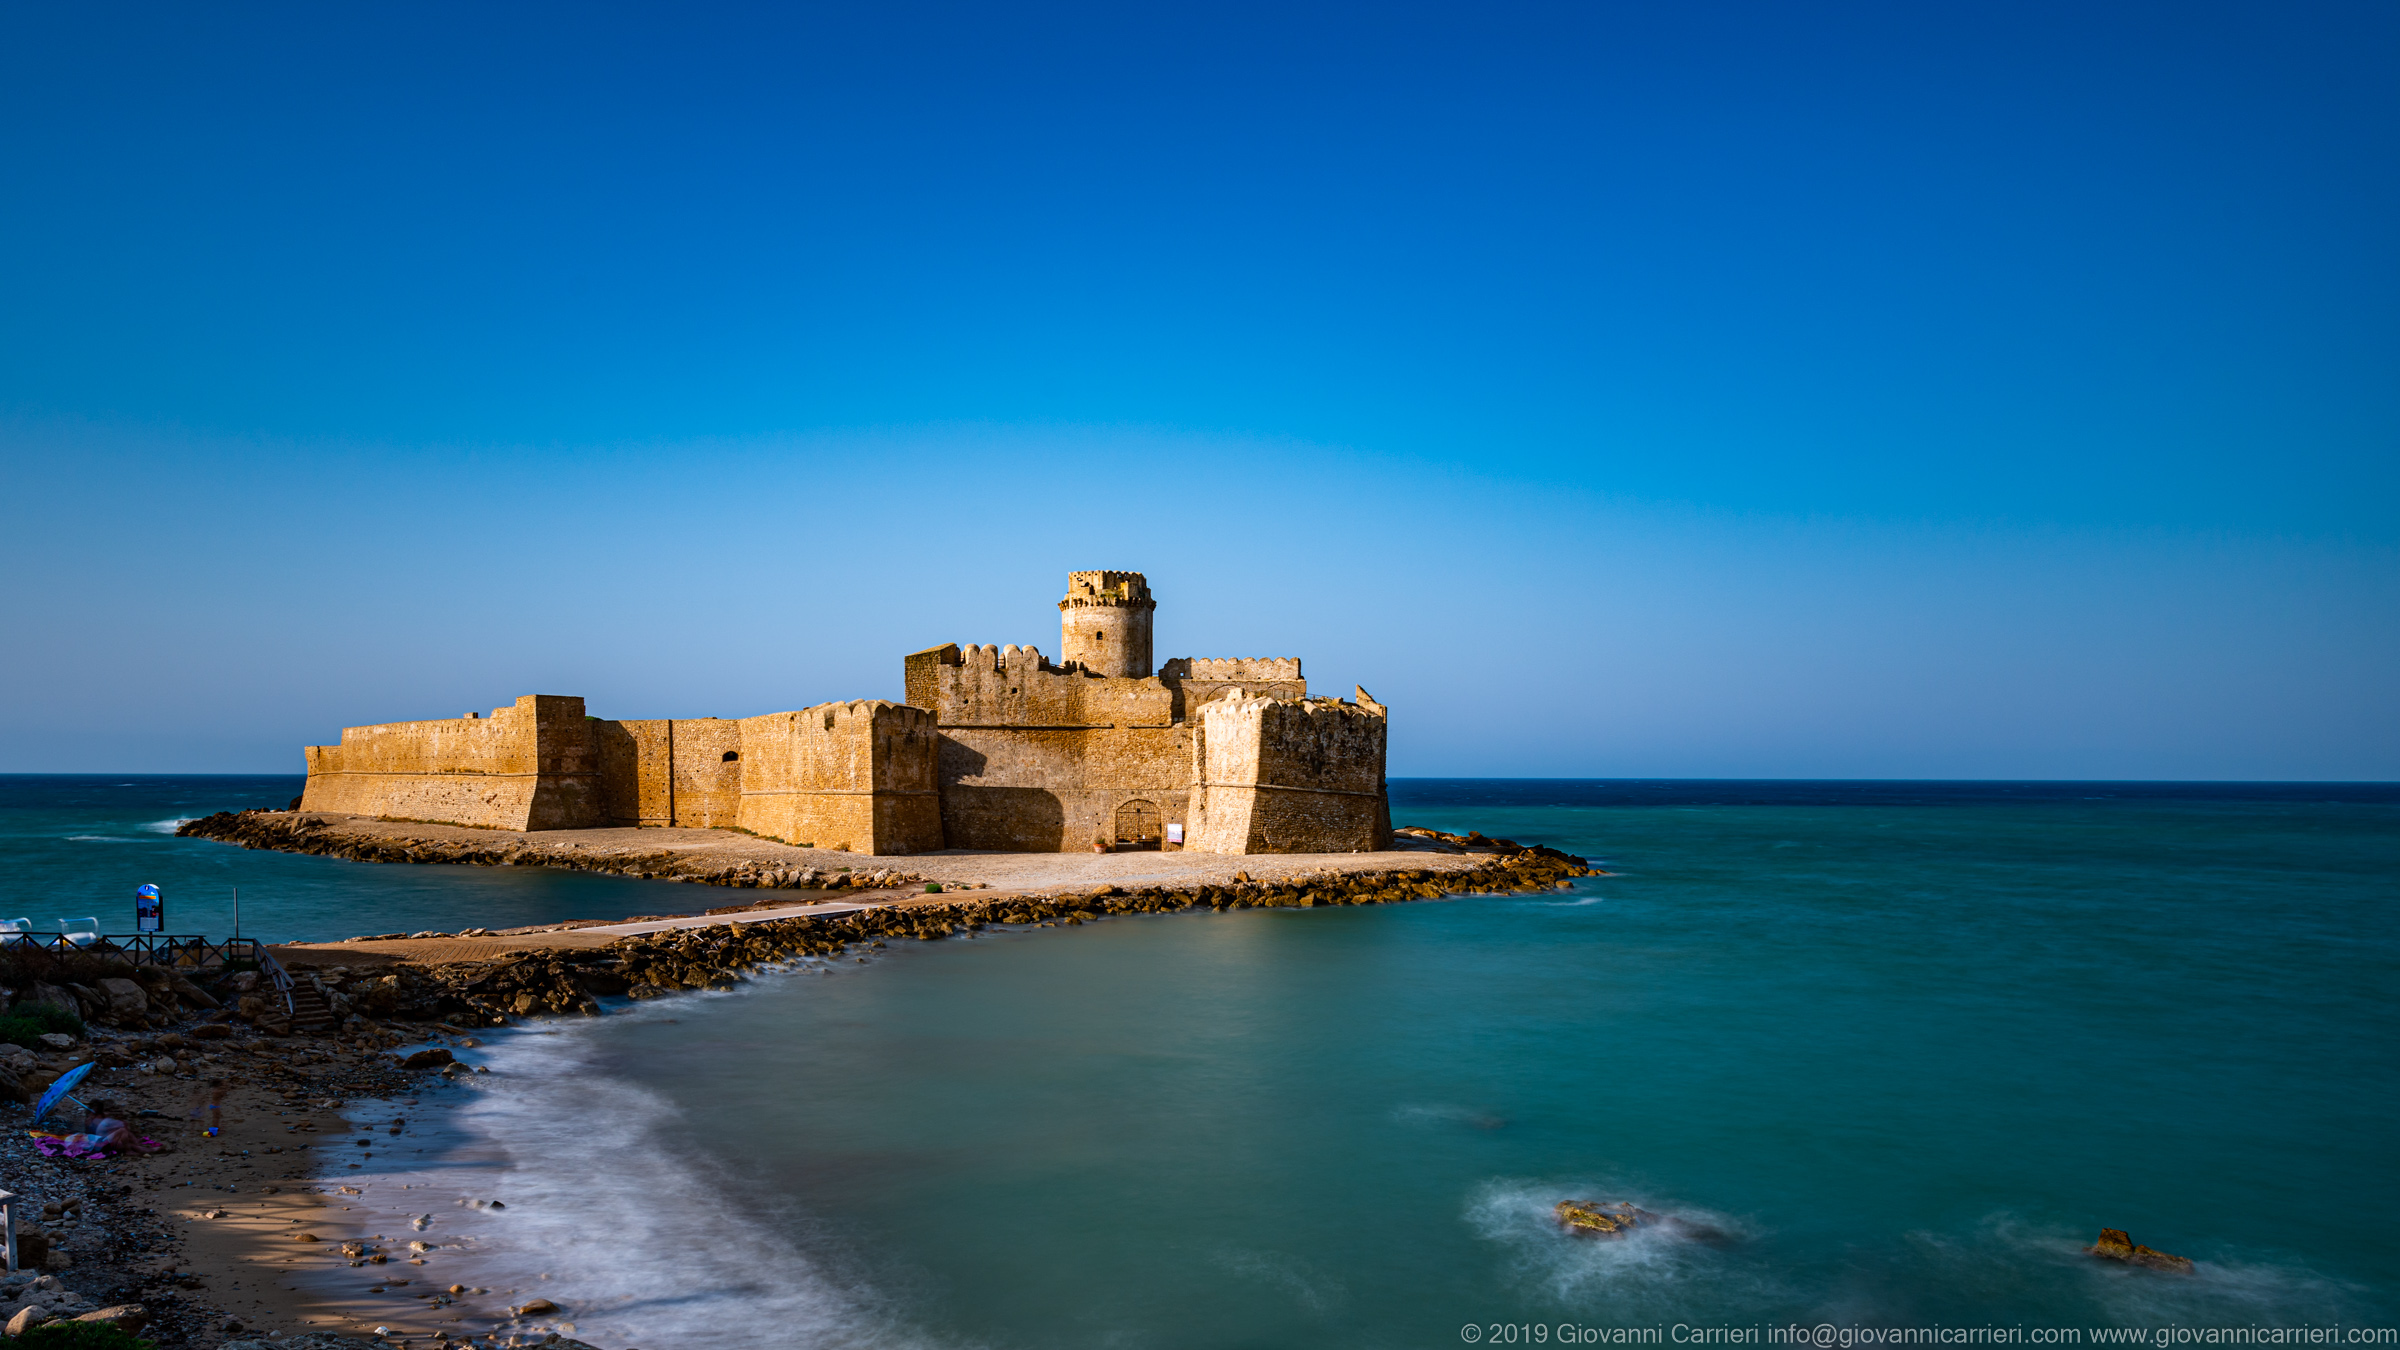 The Aragonese Fortress of Le Castella